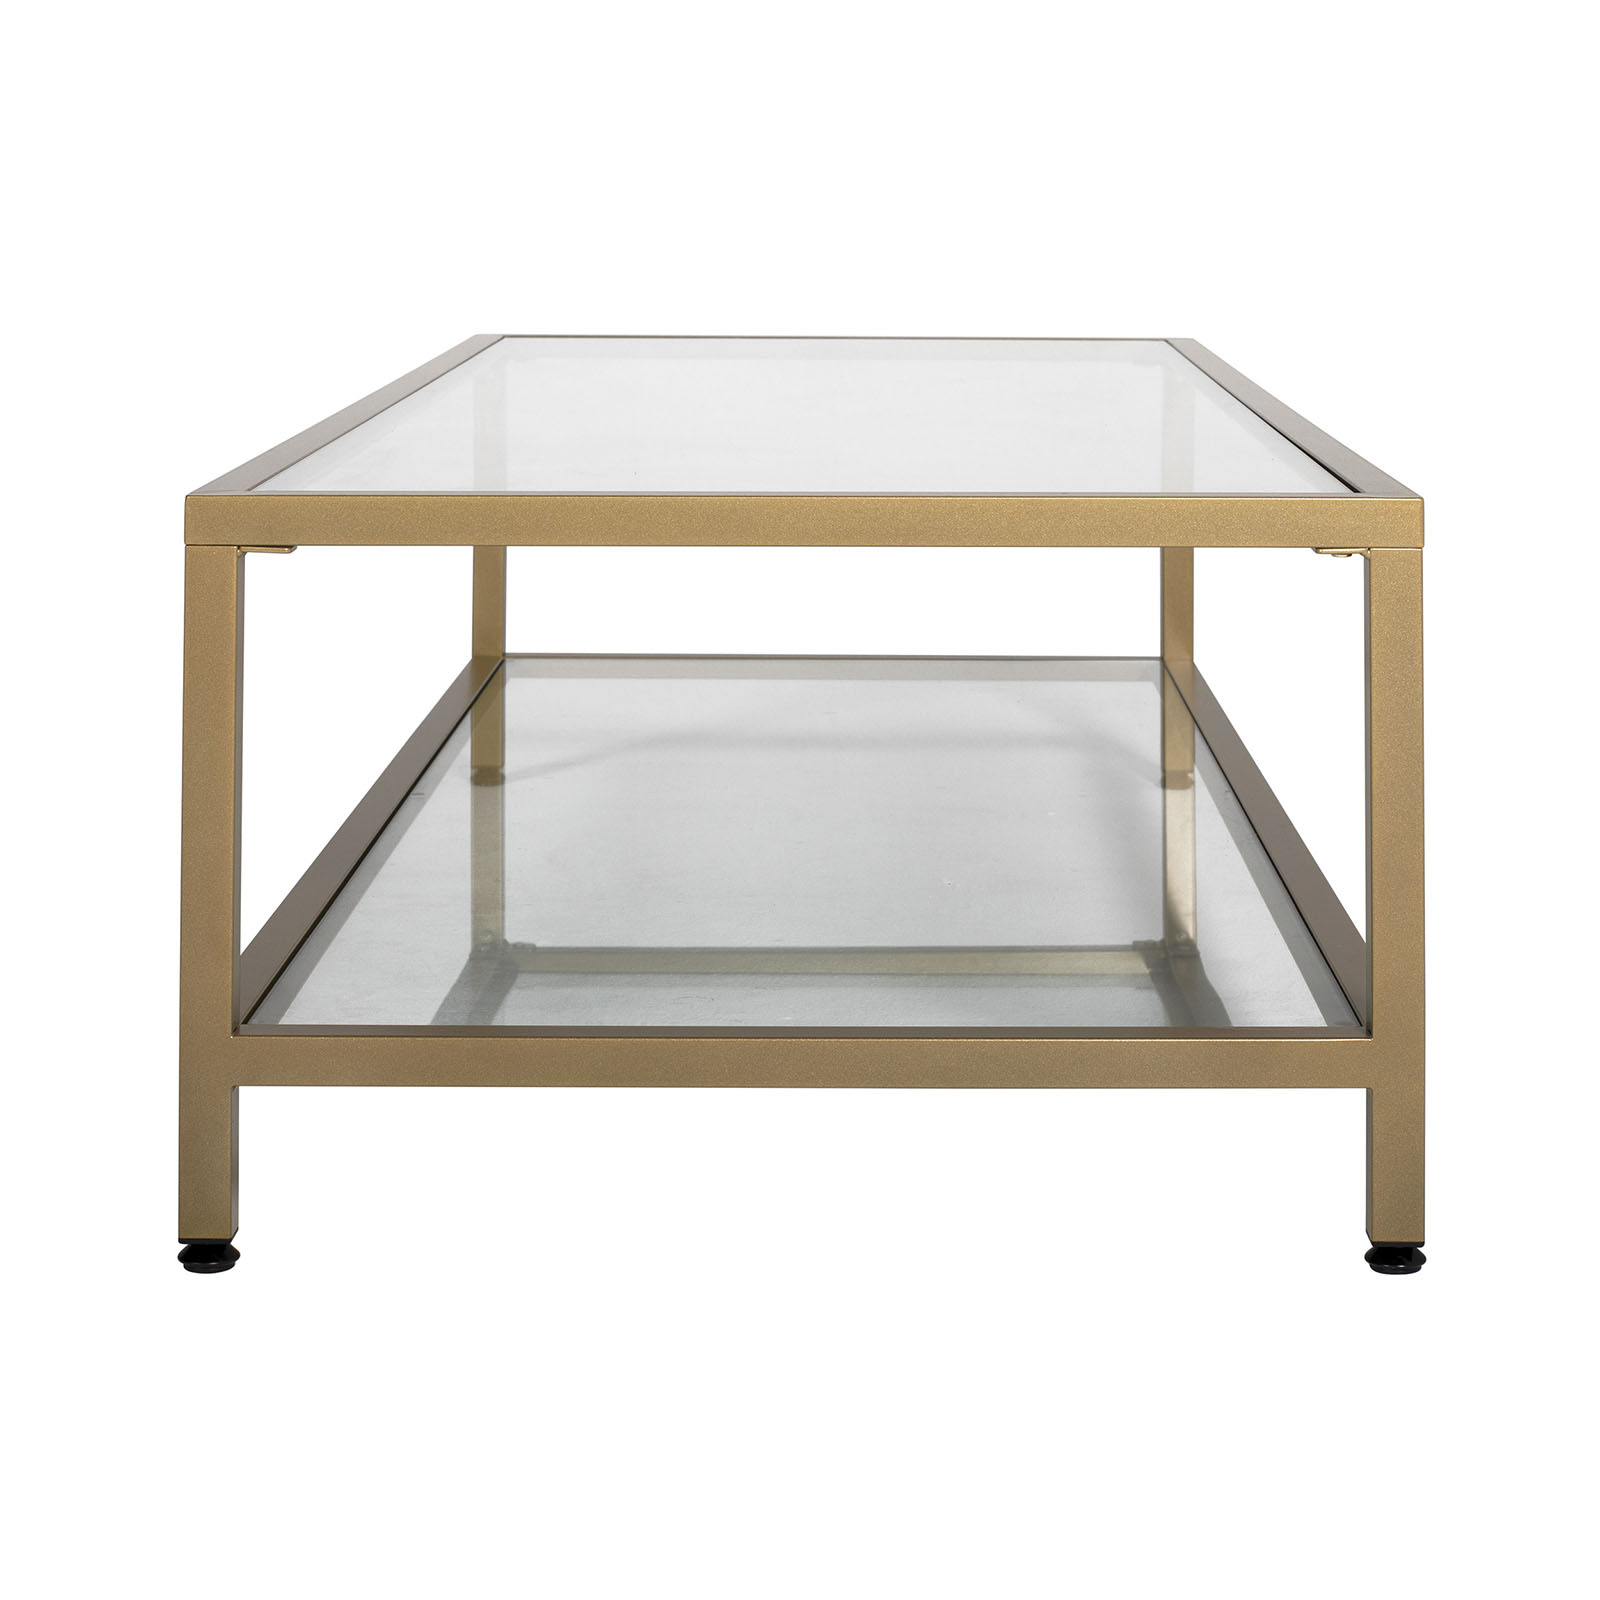 71034 Camber Rectangle Coffee Table side